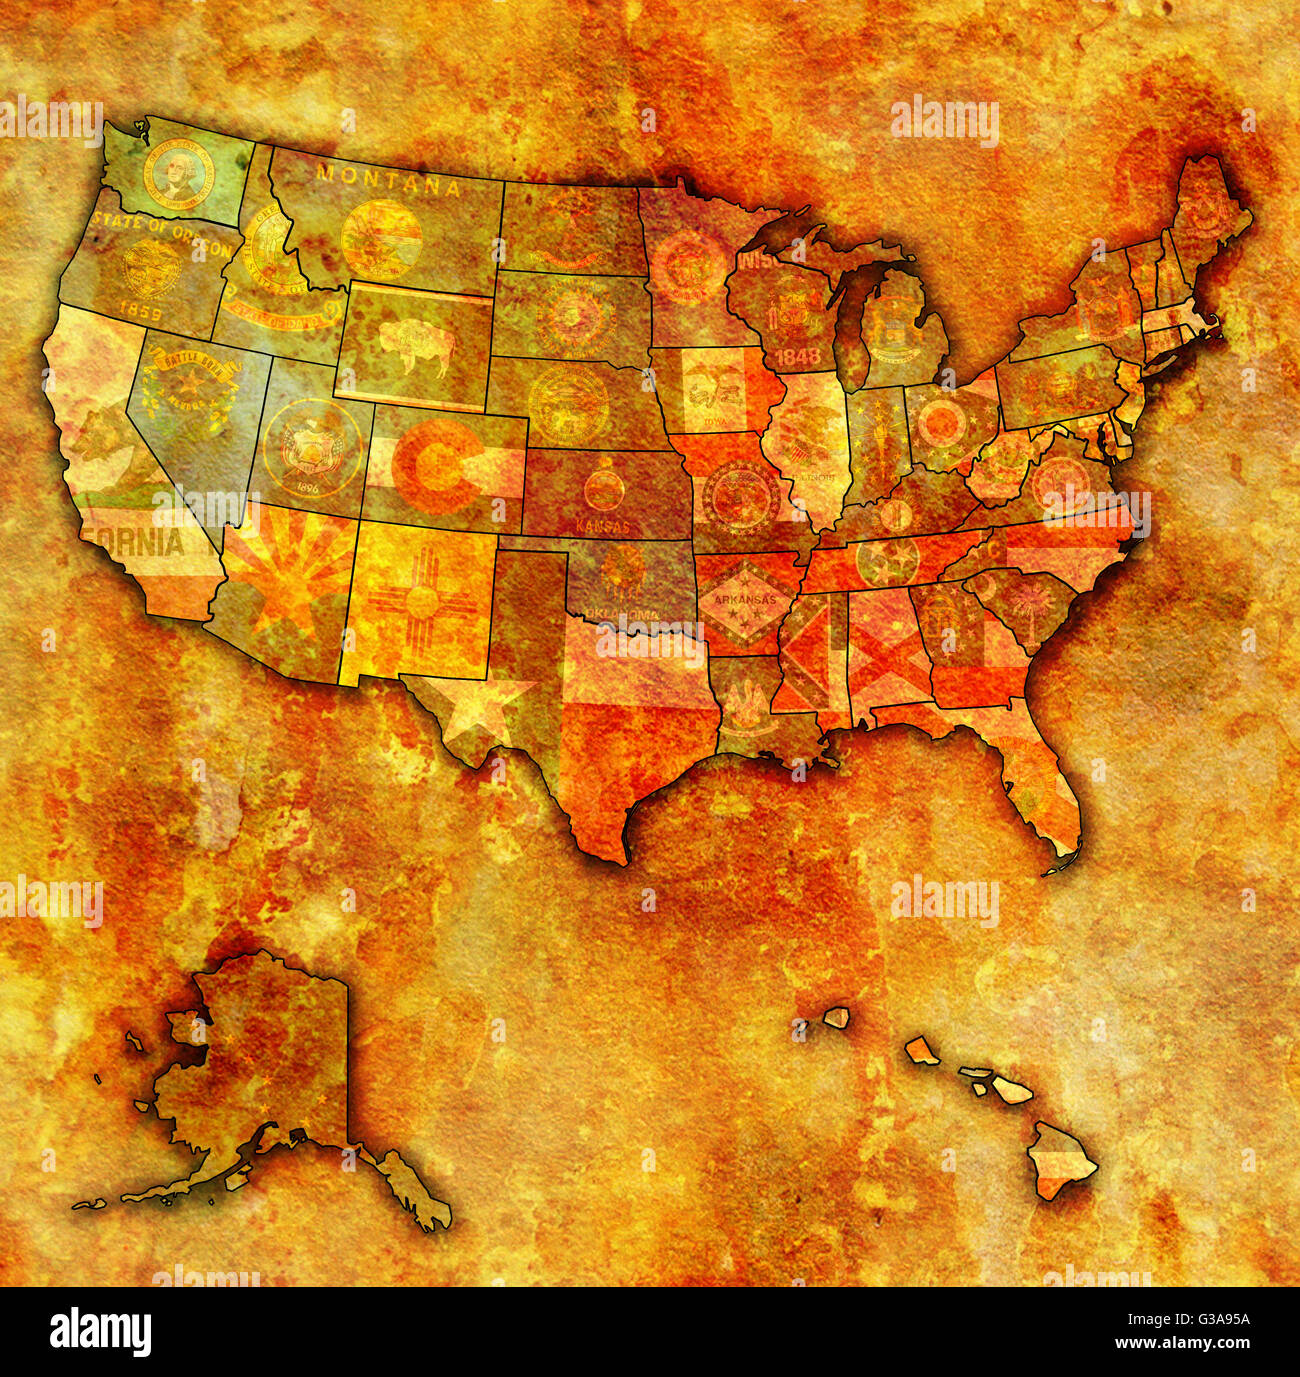 state flags on old vintage map of usa with state borders